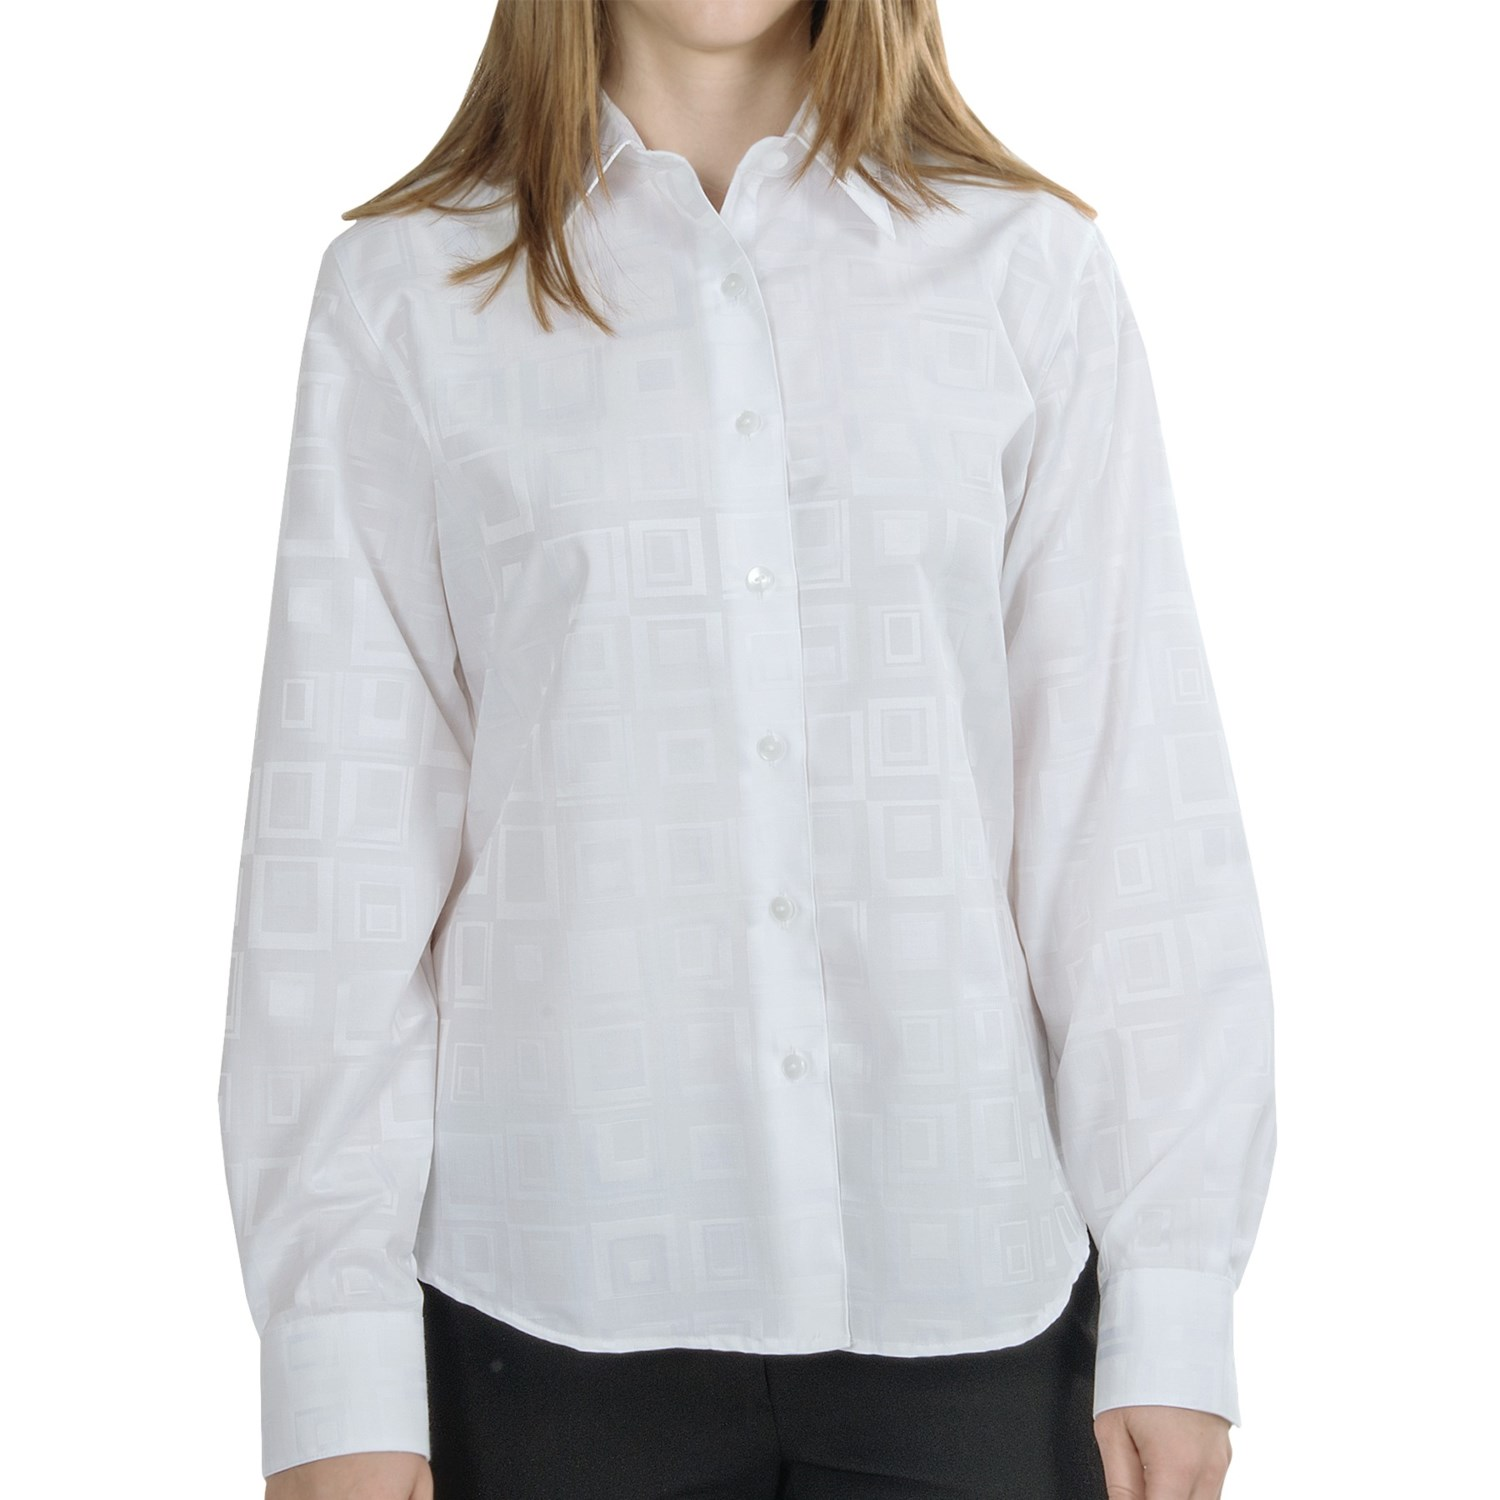 Foxcroft shaped jacquard shirt wrinkle free long sleeve Wrinkle free shirts for women